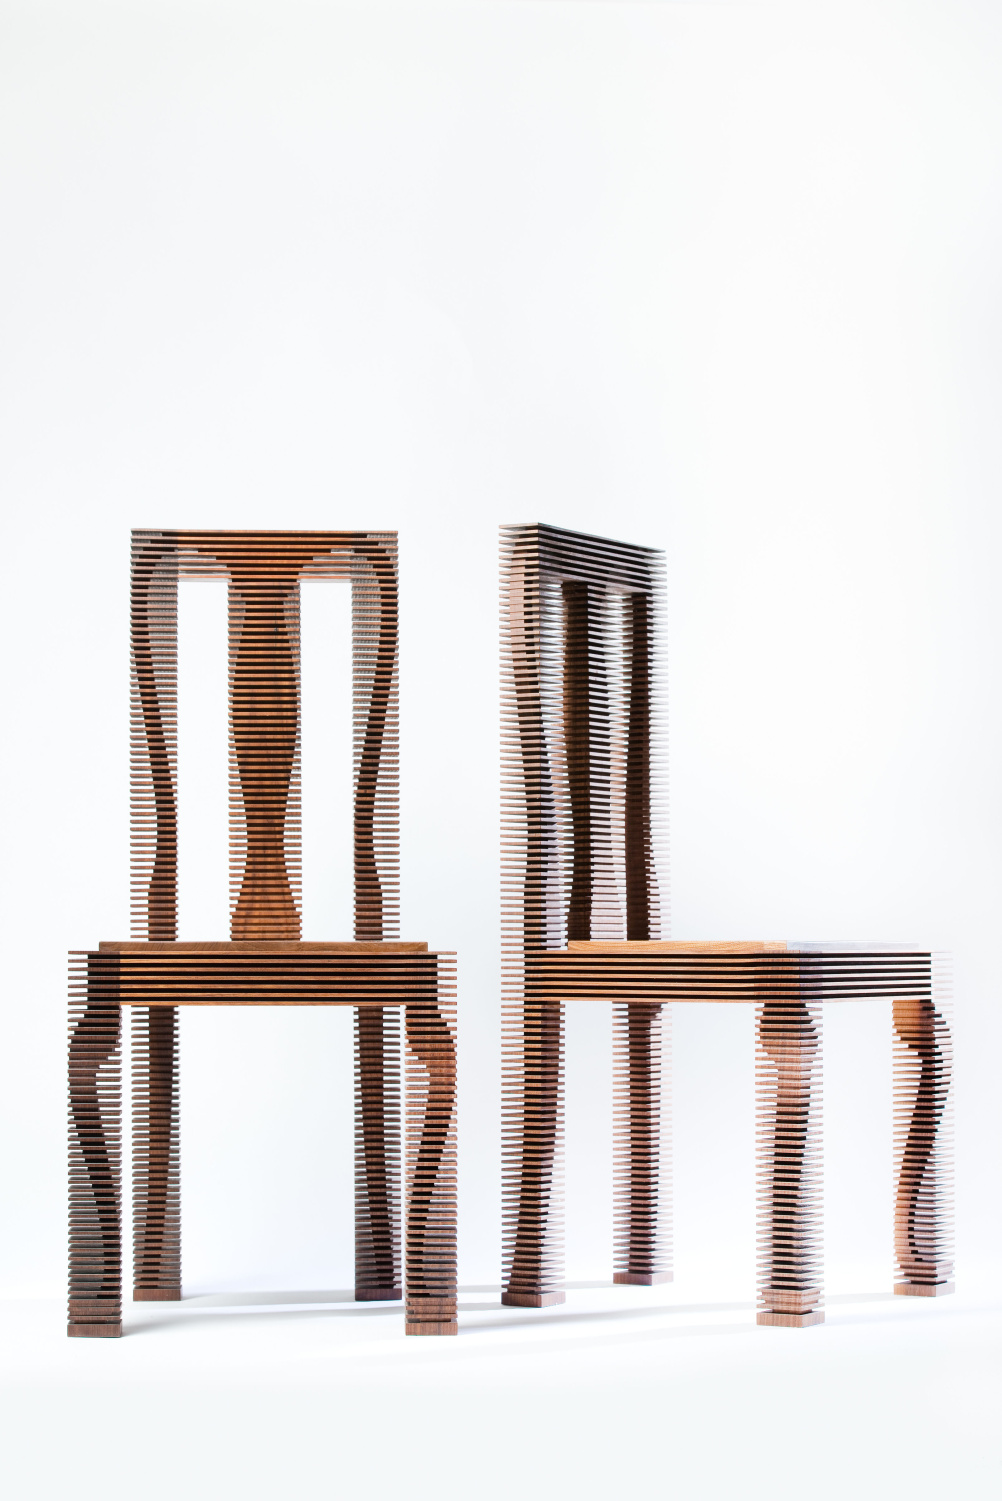 Queen Anne Chair by Gareth Neal